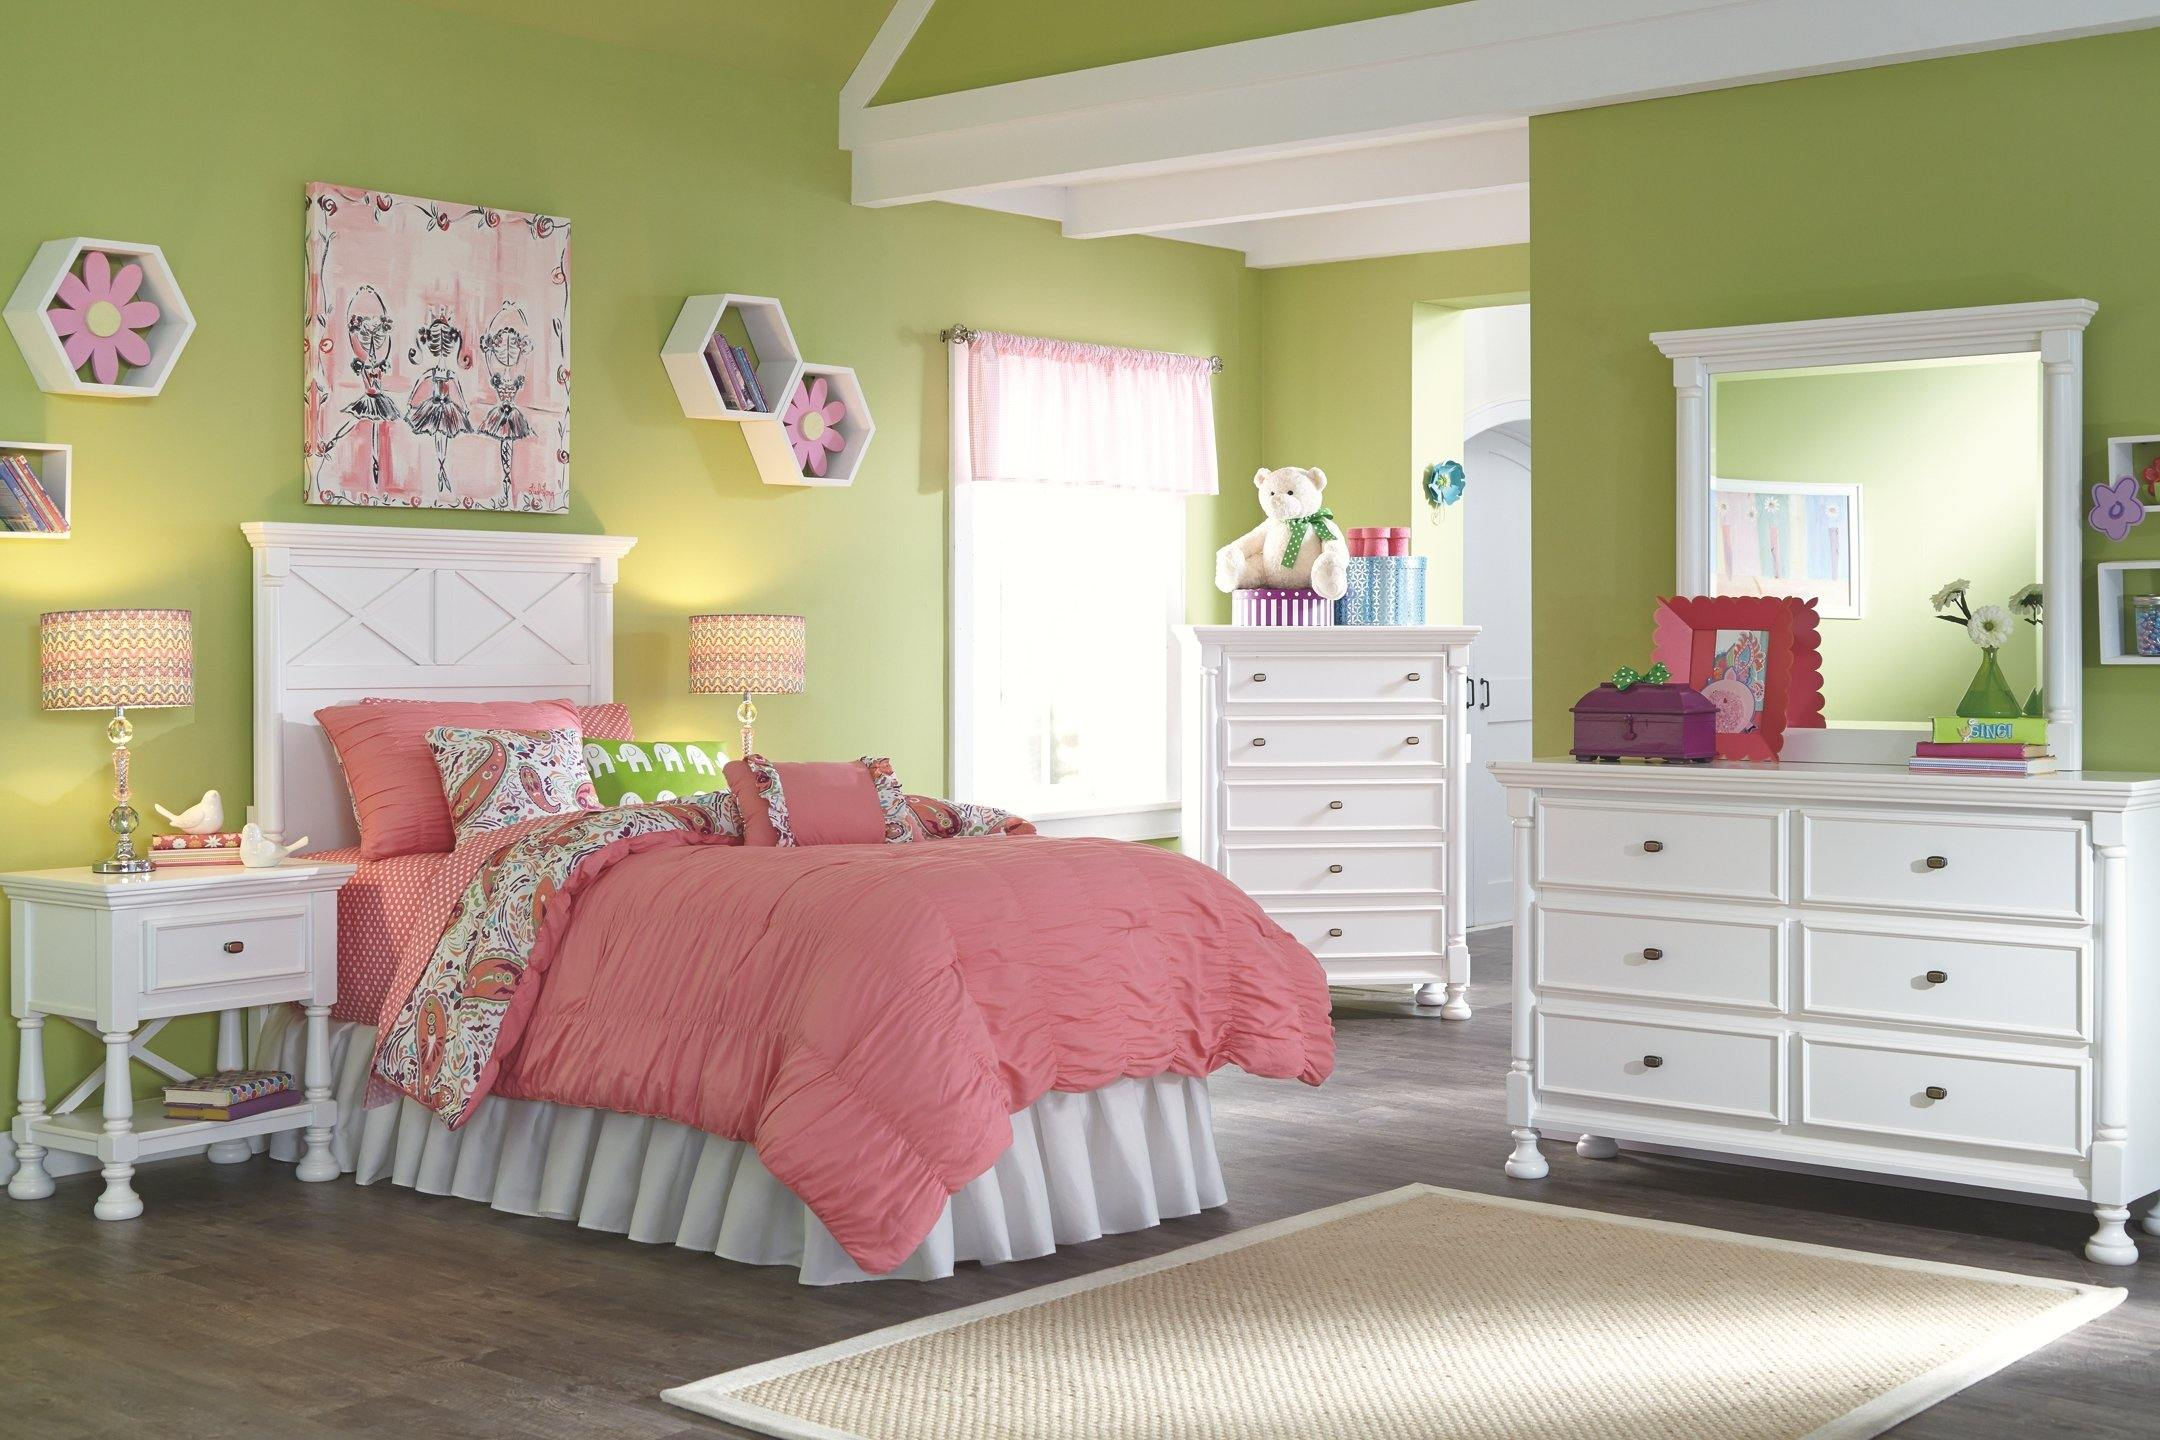 Kaslyn Dresser B502-21 Youth Bed Cases By ashley - sofafair.com